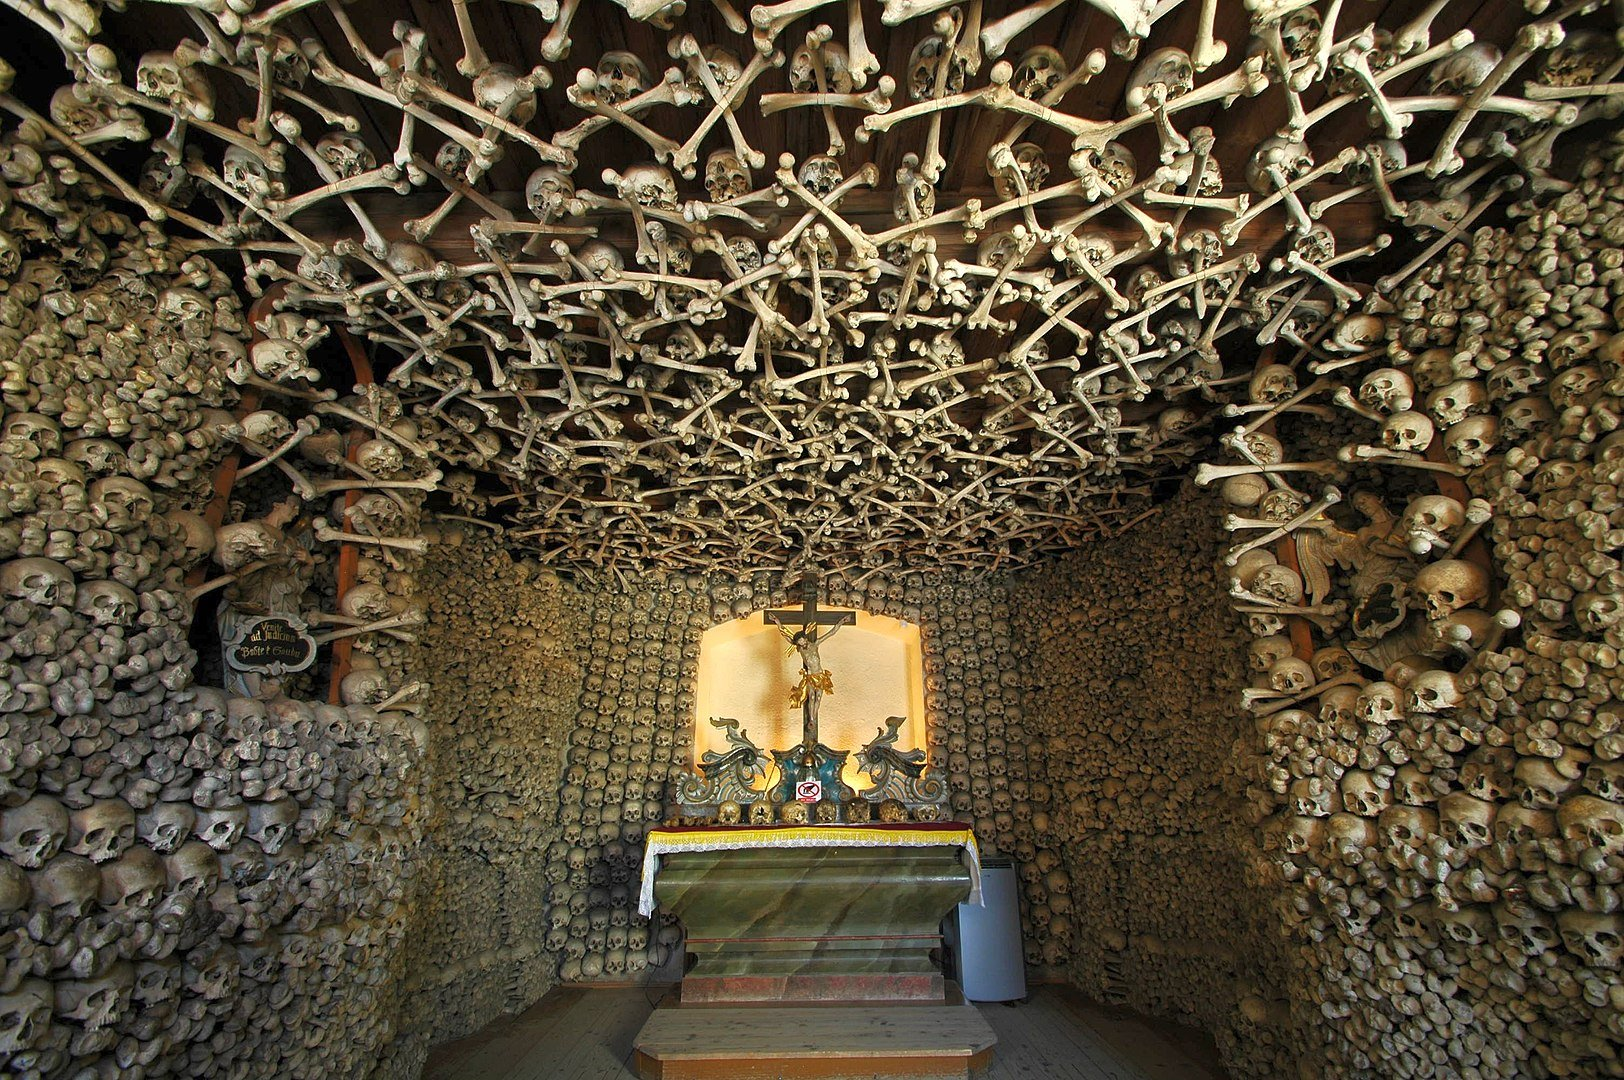 1624px-Poland - Czermna - Chapel of Skulls - interior 02. Un techo casi contemporáneo